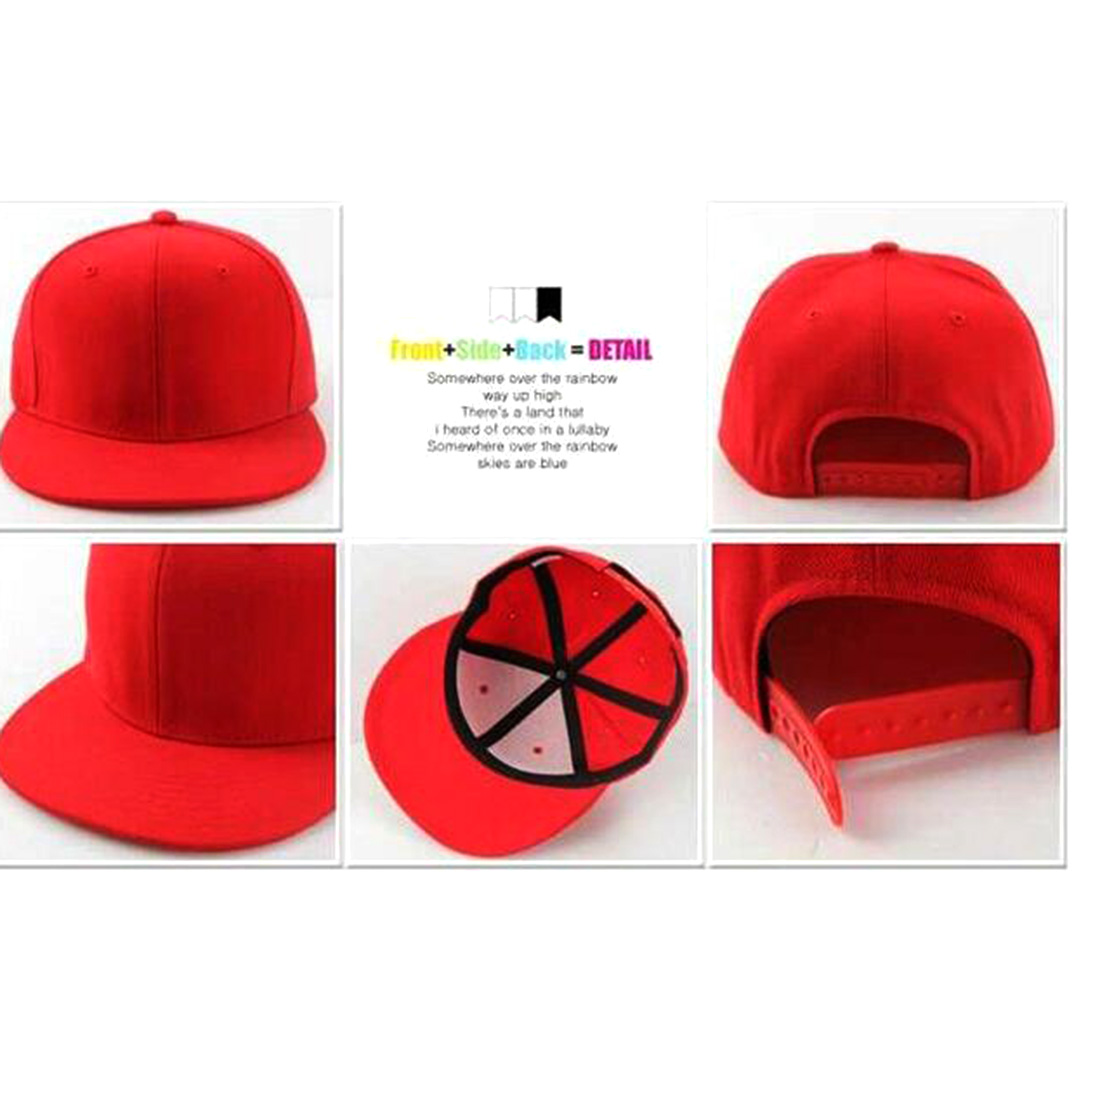 baea797409ea6d Hot Sale Spring Summer Pure Color Caps Flat Hip Hop Style Hat Europe Style  Cowboy Hats Baseball Cap 15 Colors Adjustable-in Baseball Caps from Sports  ...